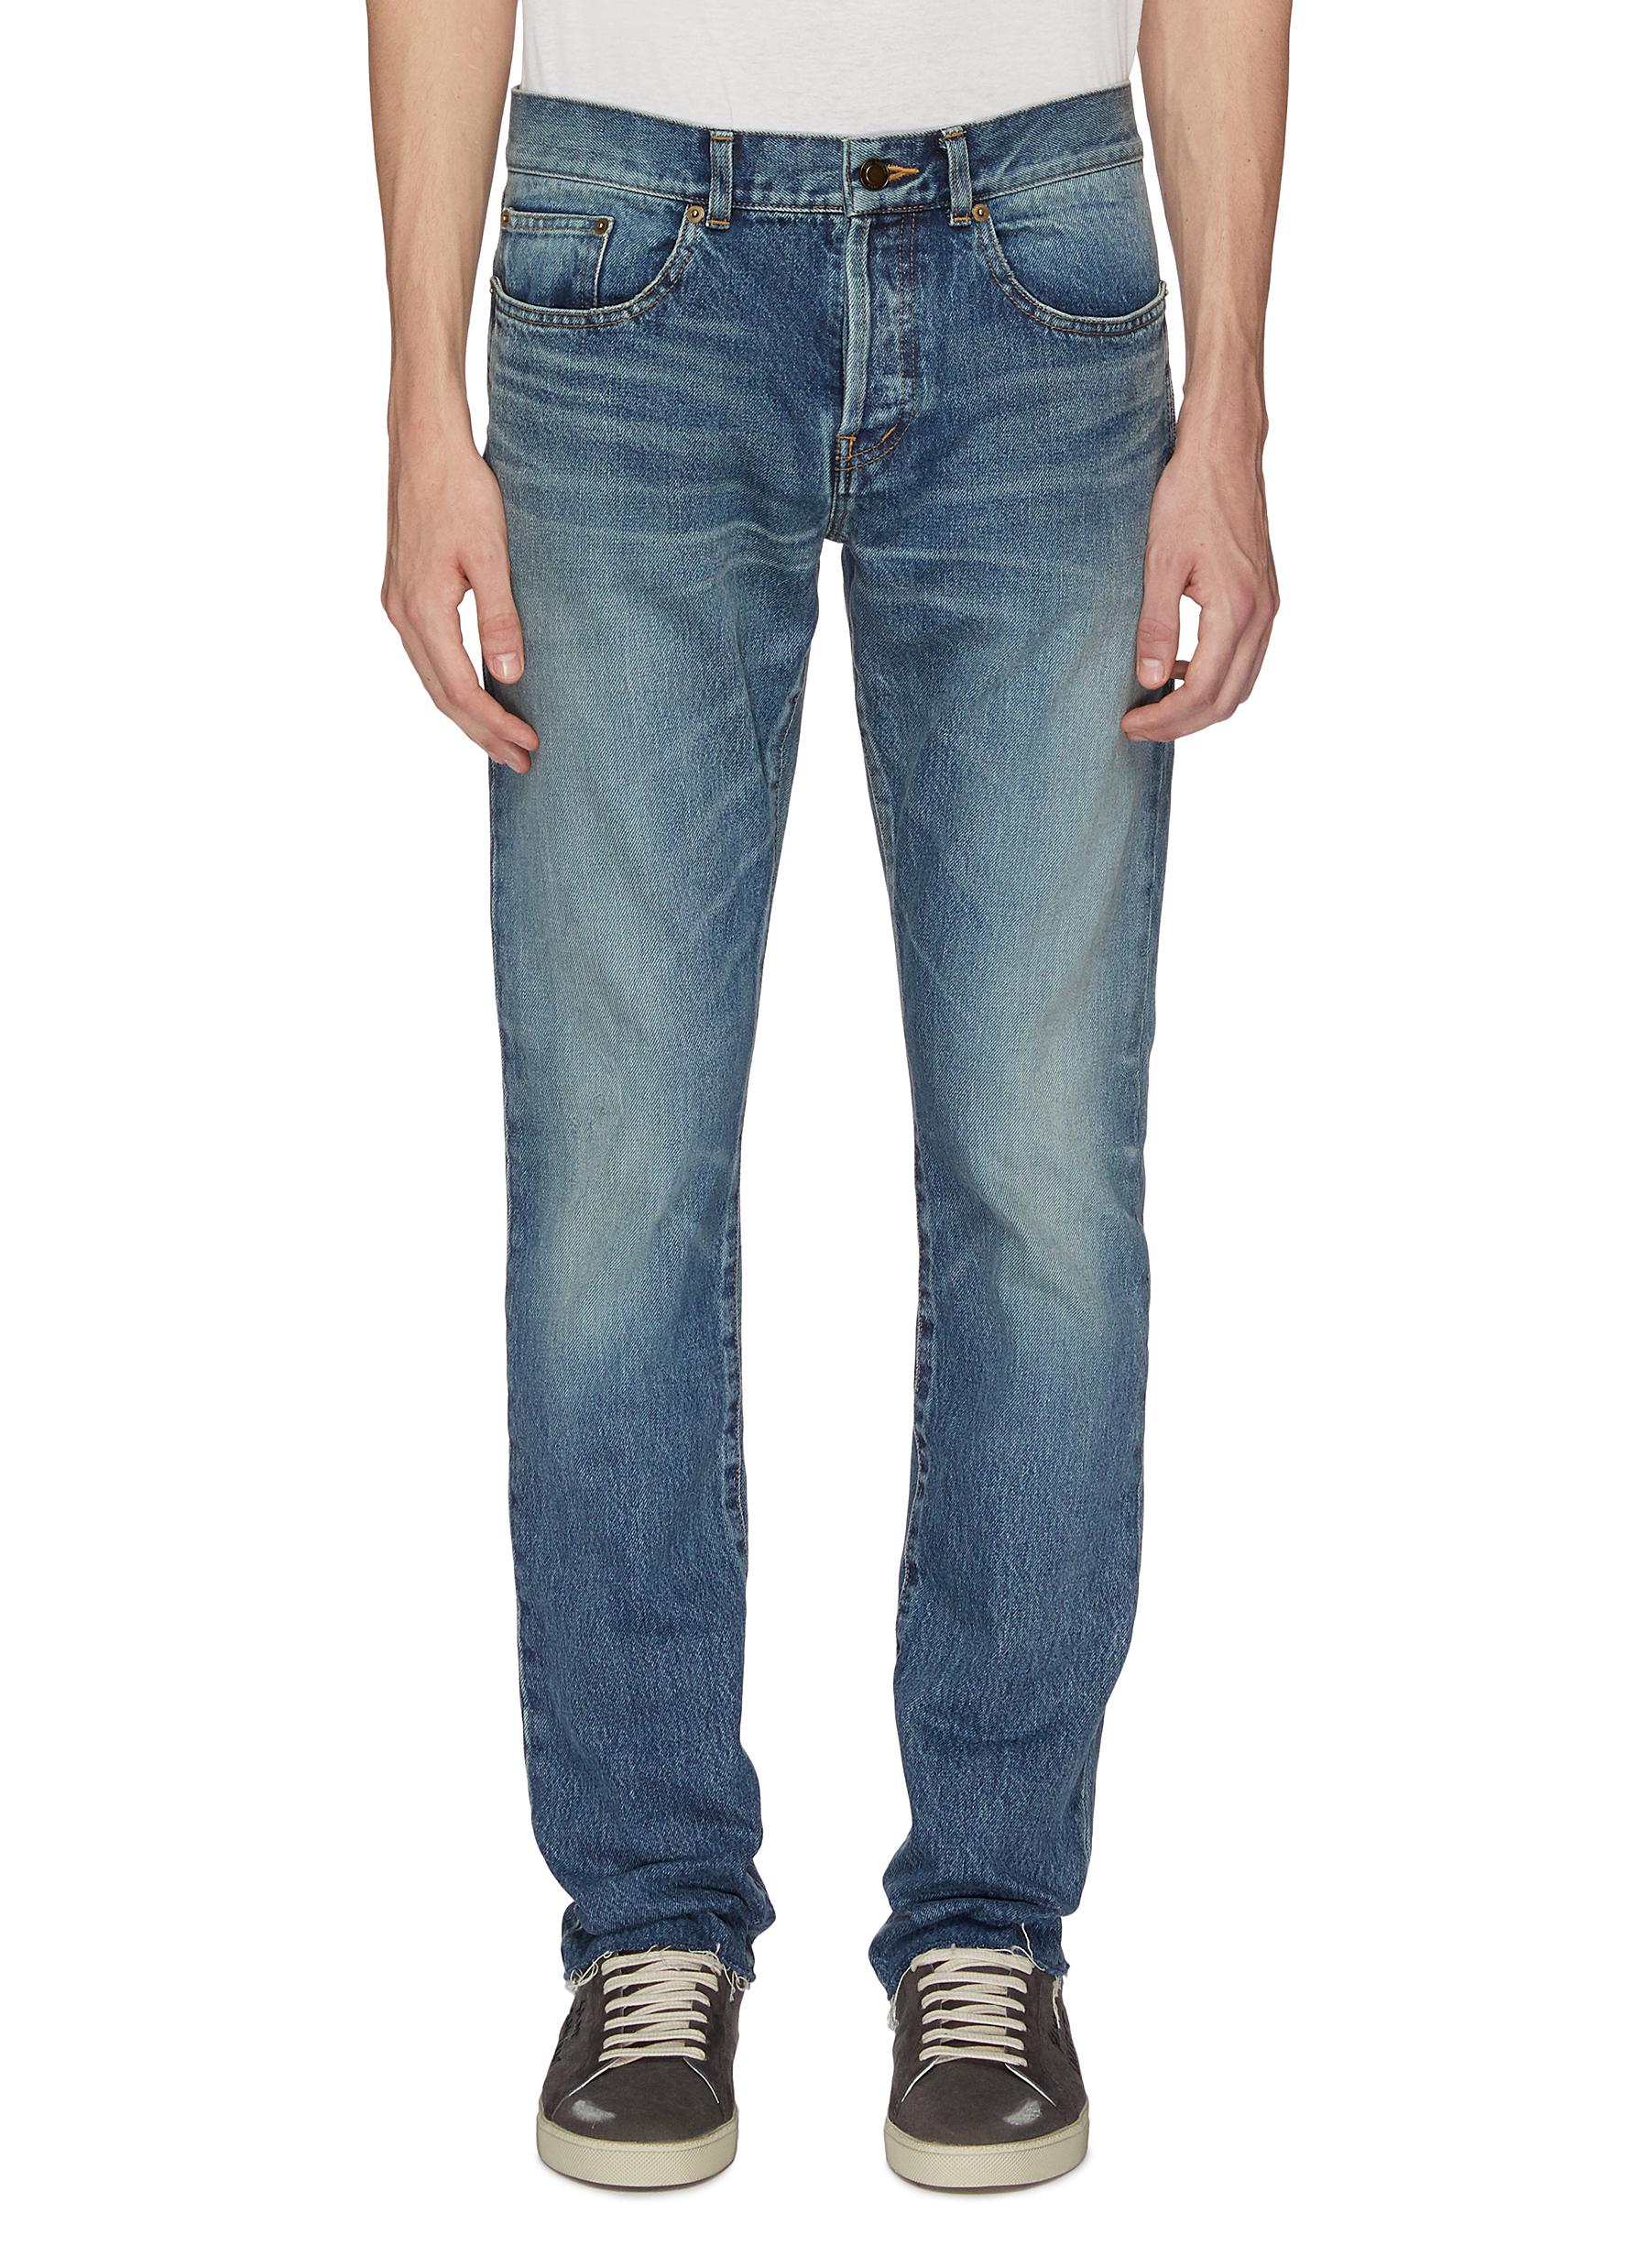 45380053 Main View - Click To Enlarge - SAINT LAURENT - Bandana panel ripped jeans